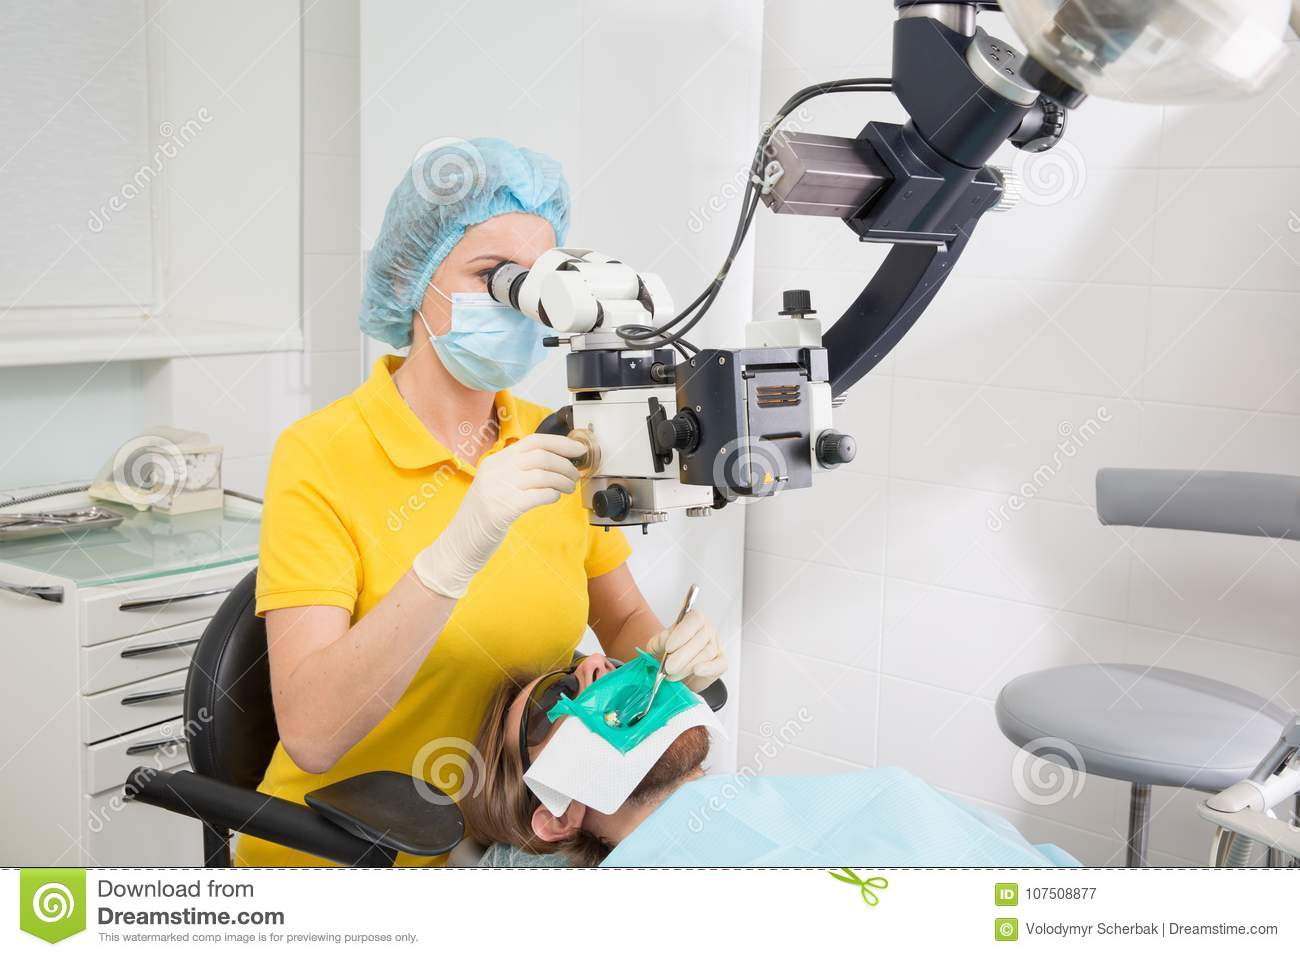 Female dentist with dental tools - microscope, mirror and probe checking up patient teeth at dental clinic office. Medicine, denti